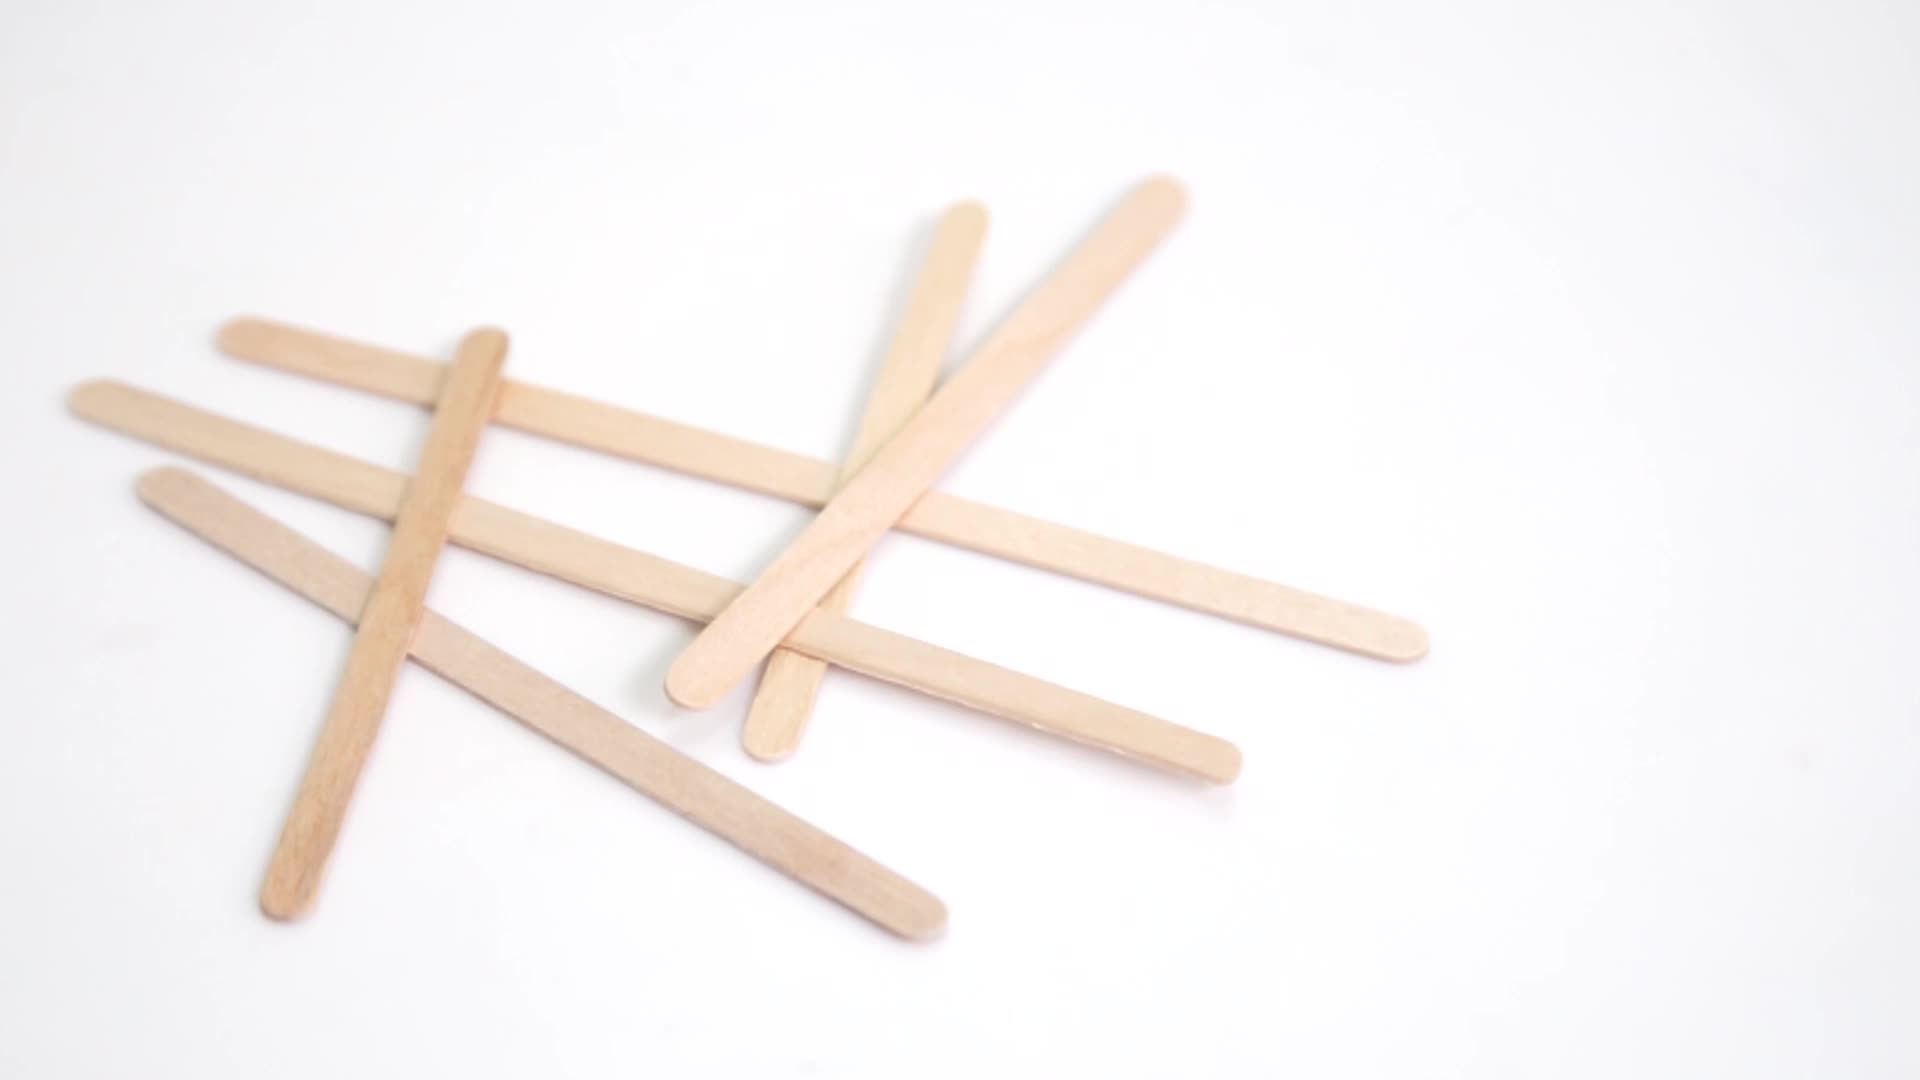 100% Natural Wood Wooden Stir Stick For Coffee